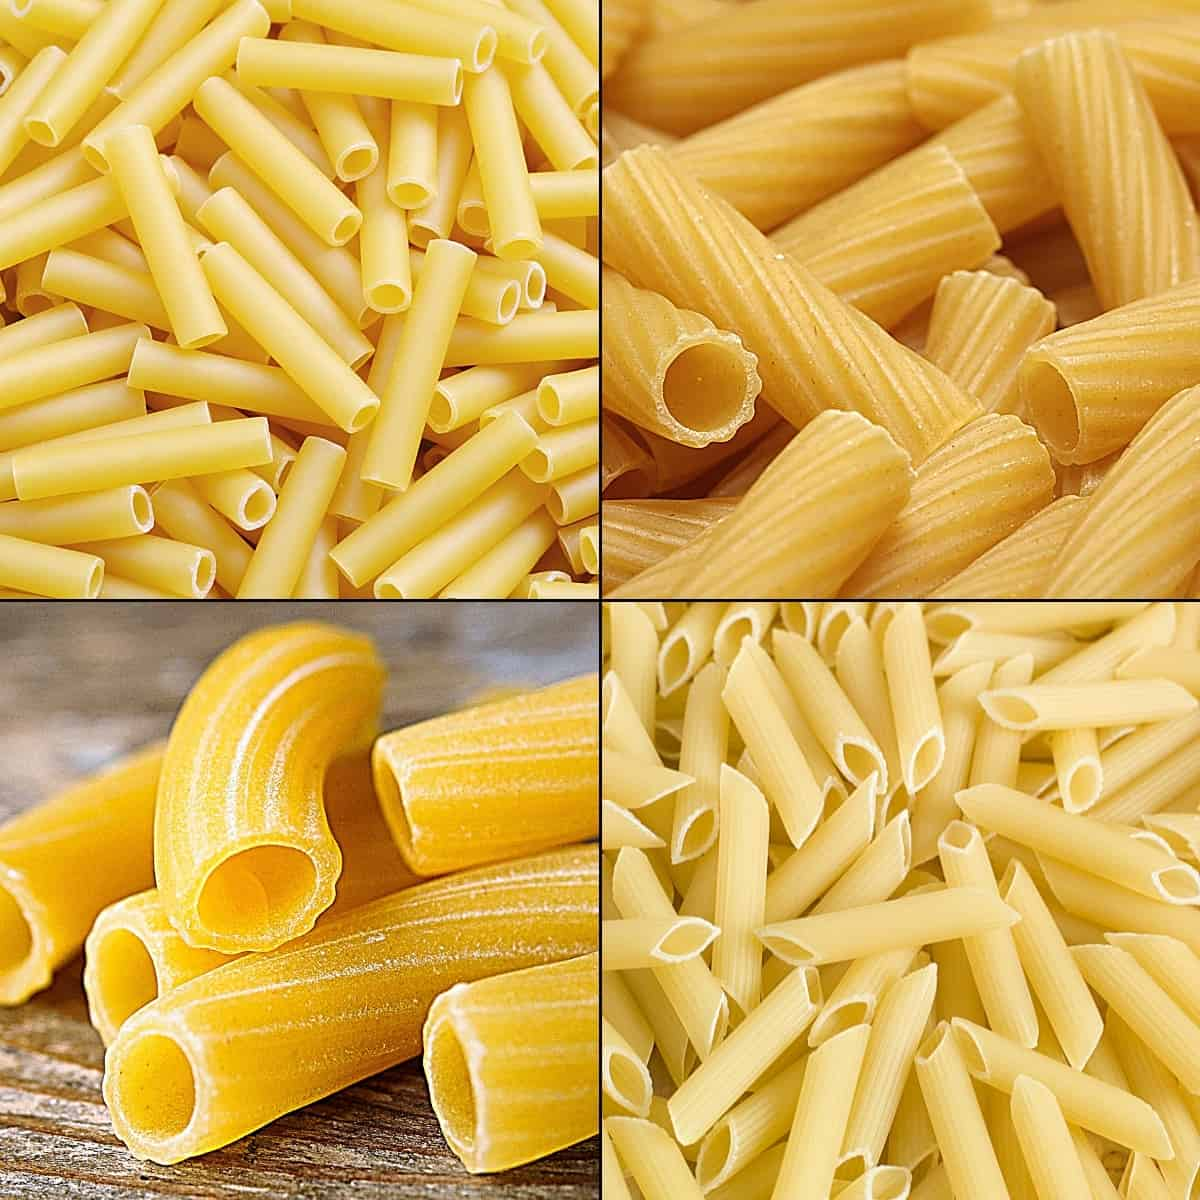 Demonstrating the difference between ziti noodles vs penne vs rigatoni pasta shapes